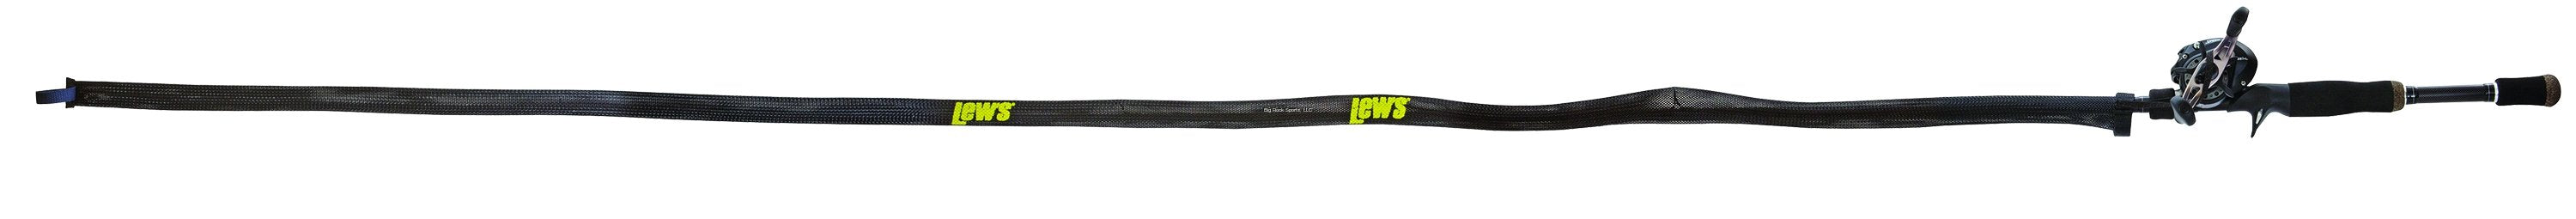 Lew's LSSBC1 Speed Socks for 6 feet 6 inch to 7 feet 6 inch Casting Rod Protection - Black - Bulluna.com